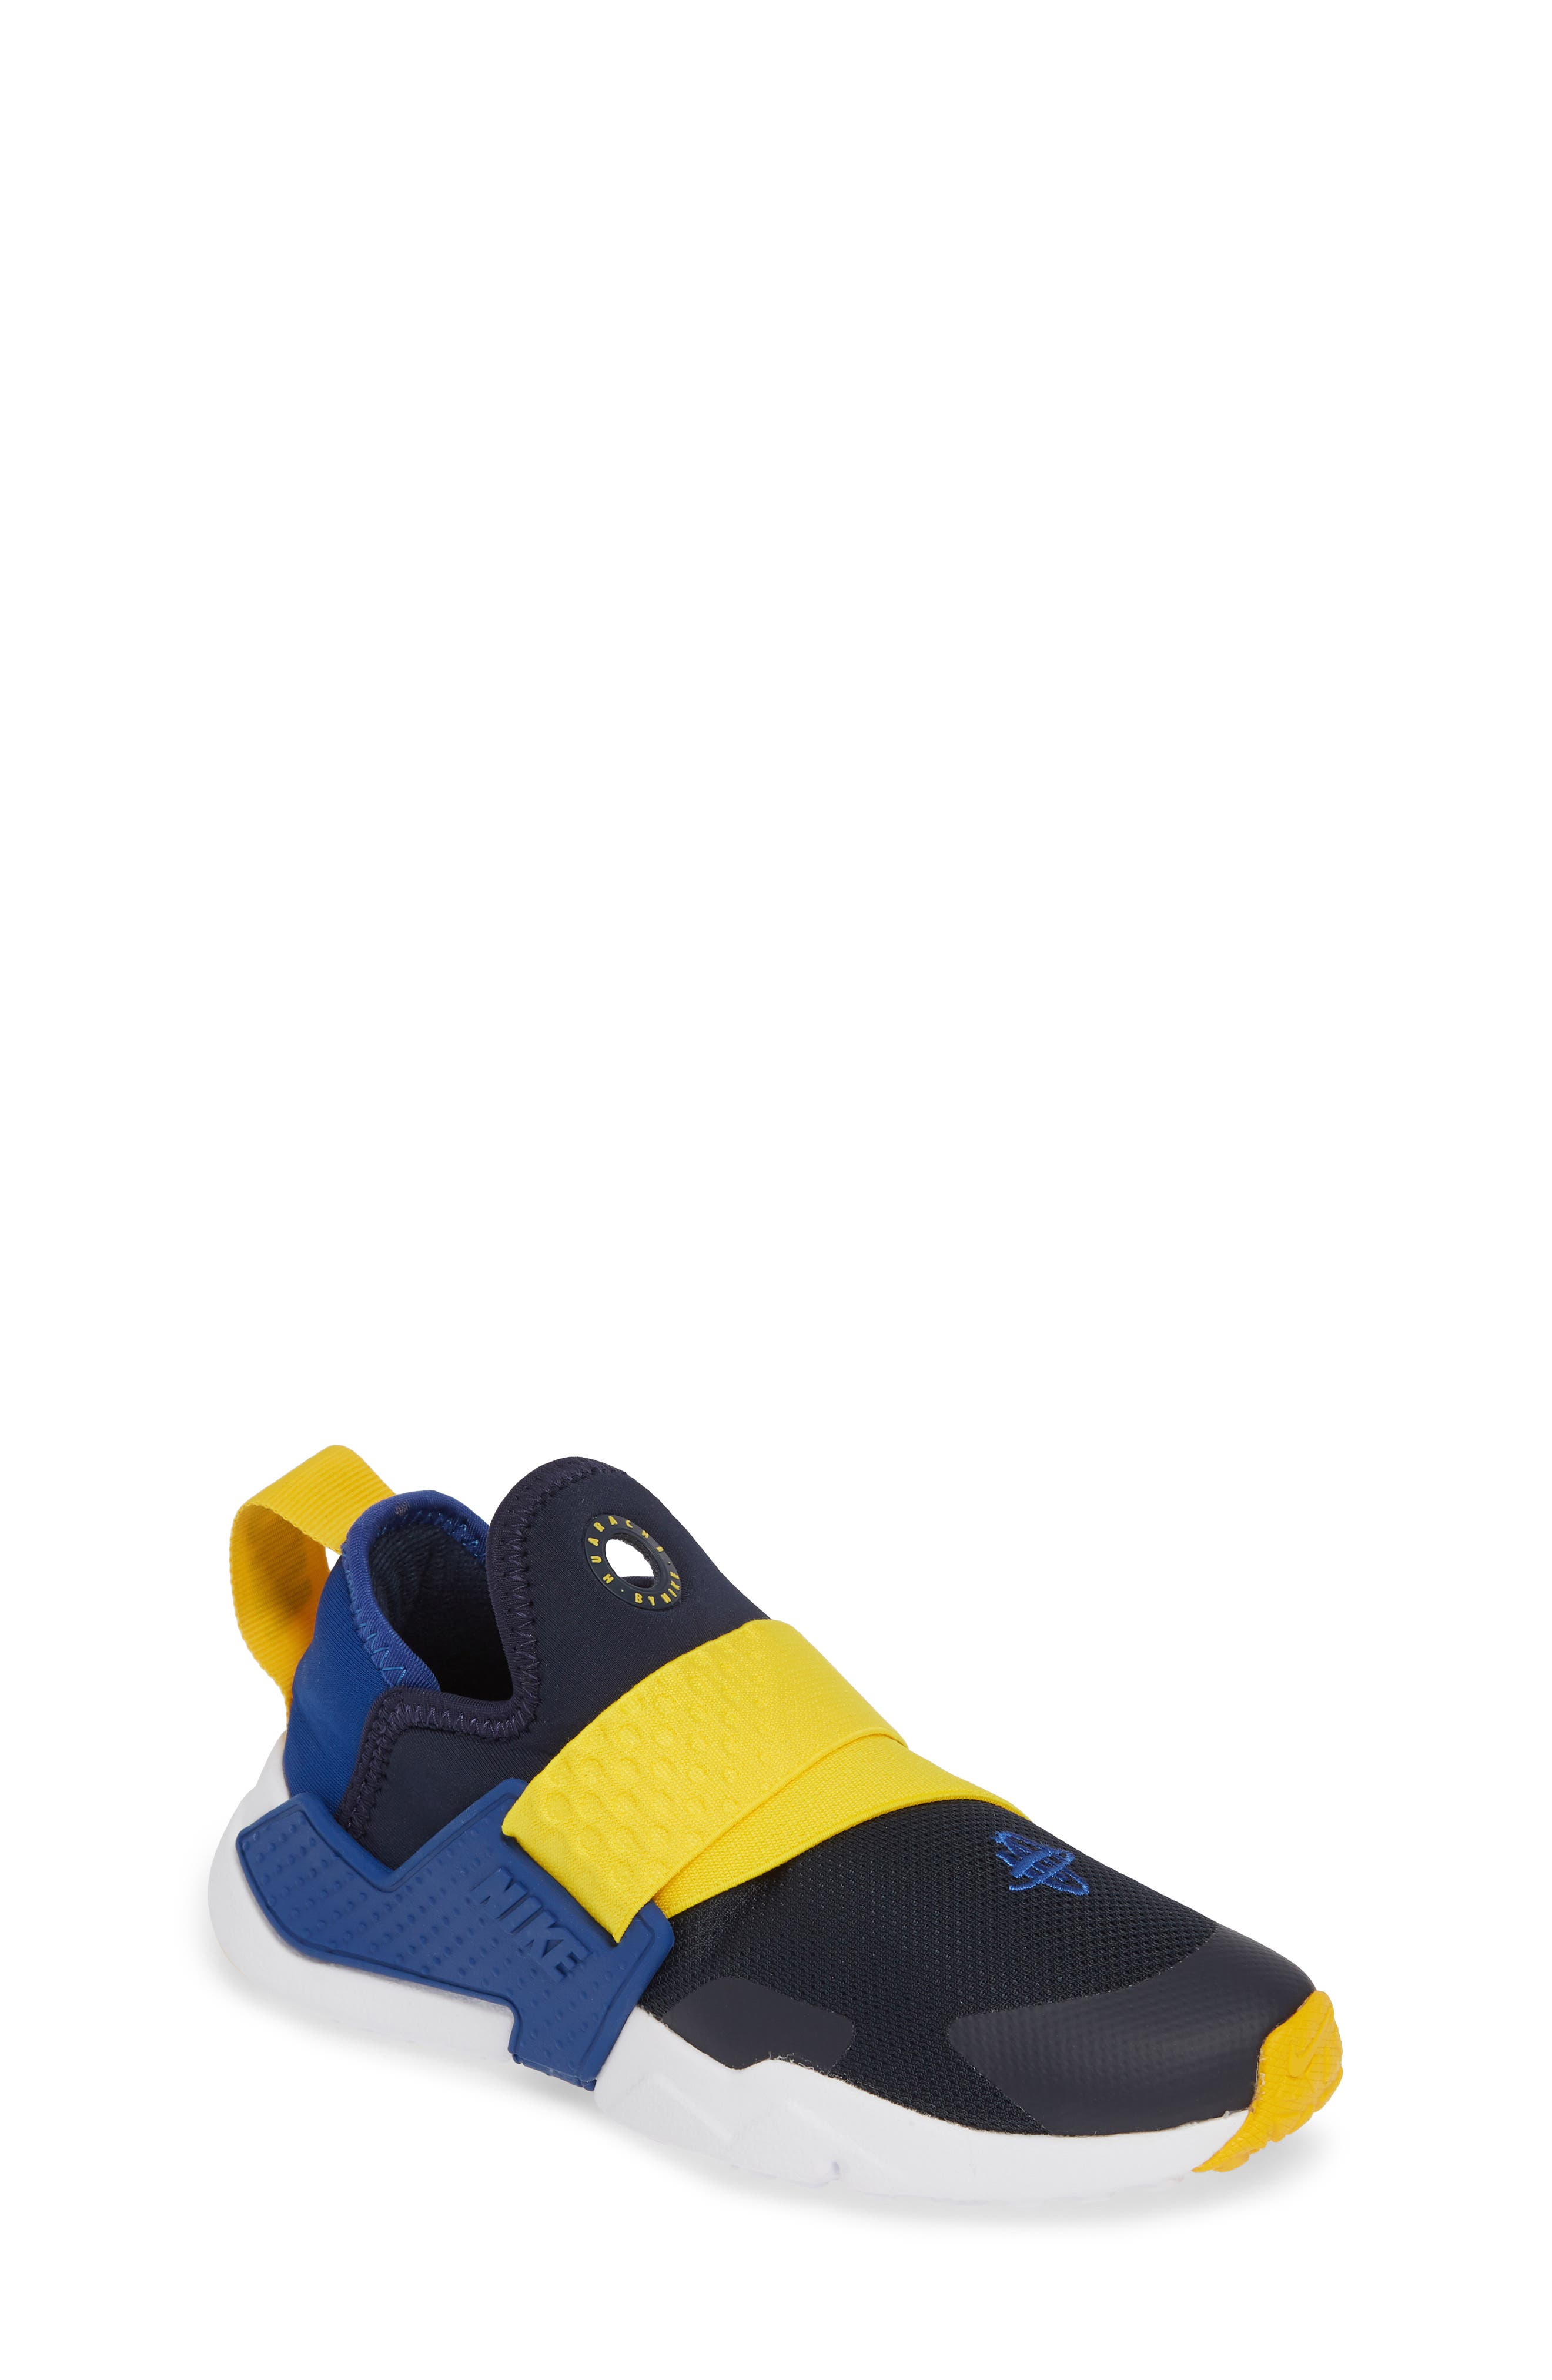 fe71e406bed13c Nike Baby Shoes